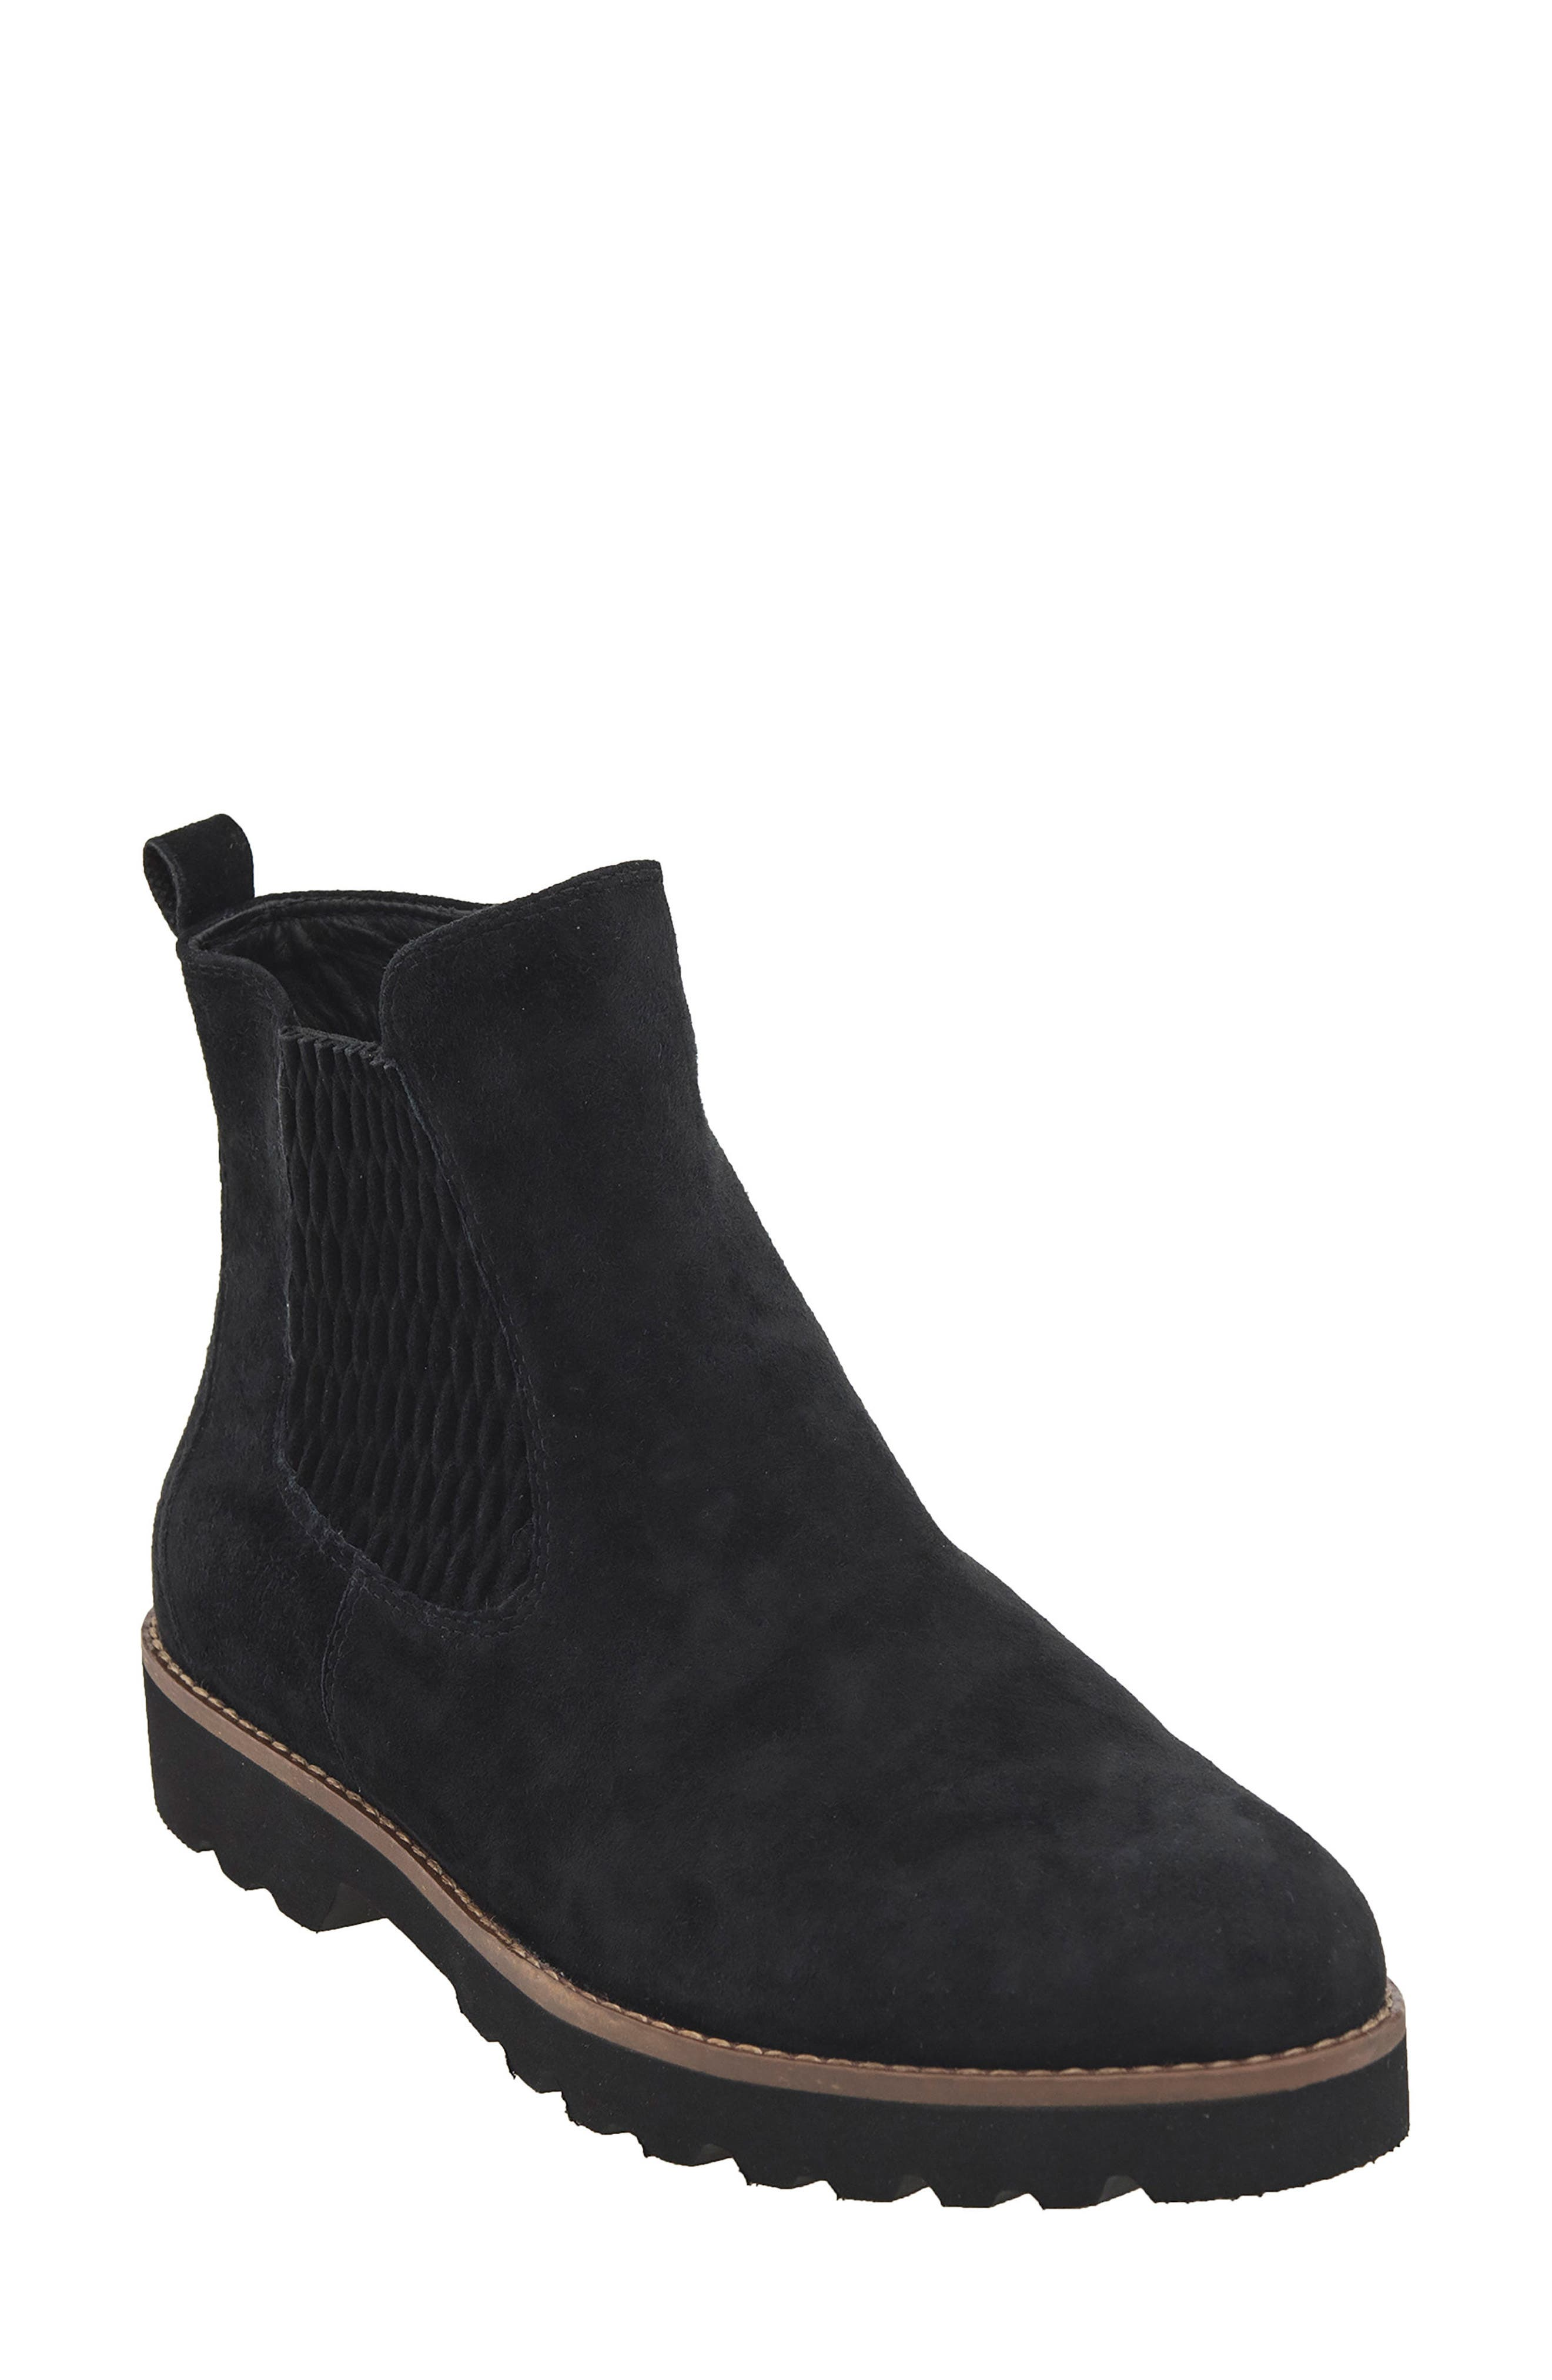 Madrid Chelsea Boot,                         Main,                         color, 001